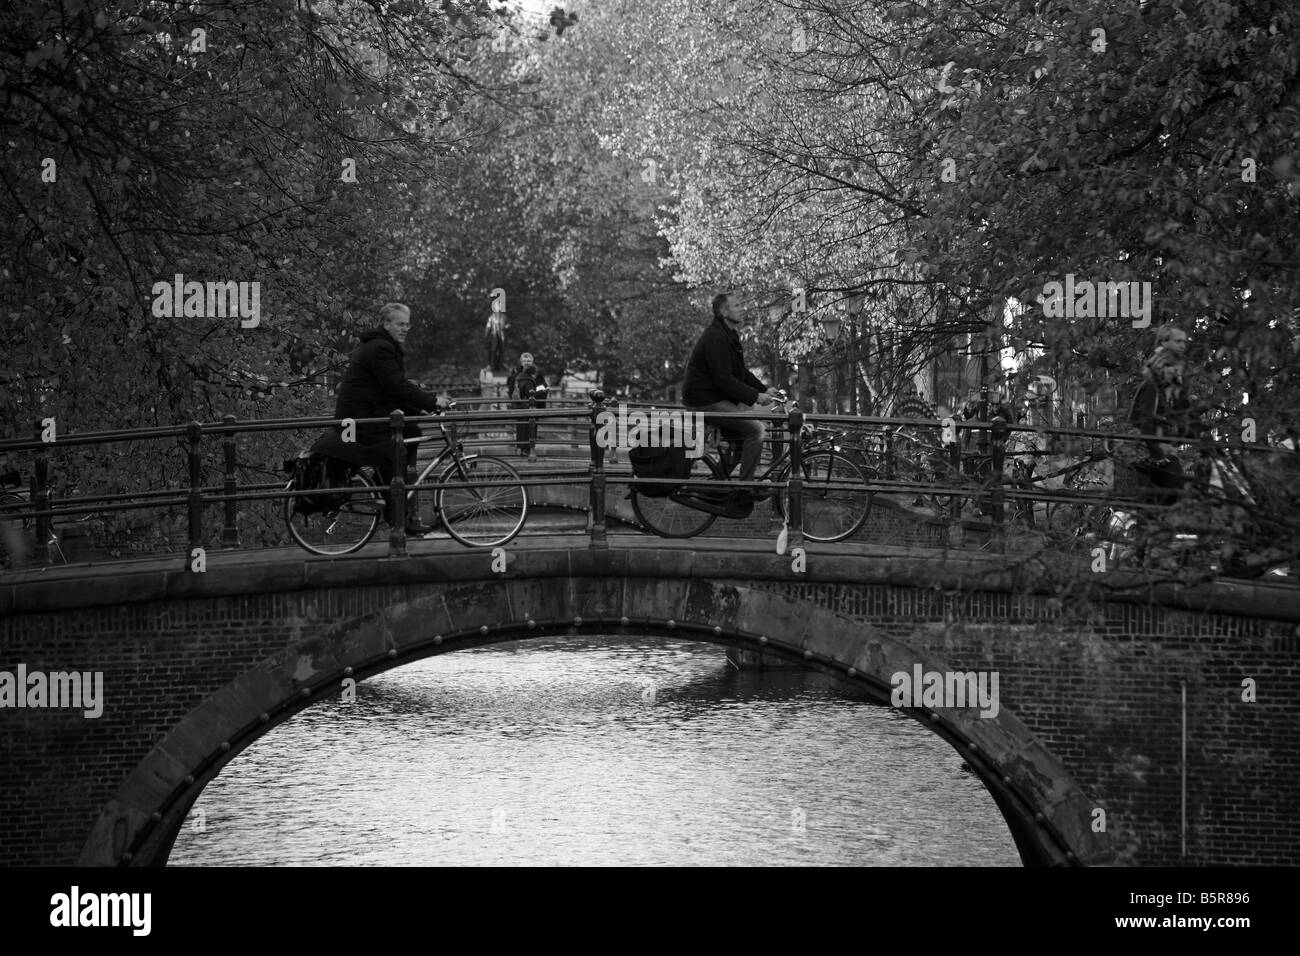 People cycling across the bridge at the Prinsengracht, Amsterdam - Stock Image